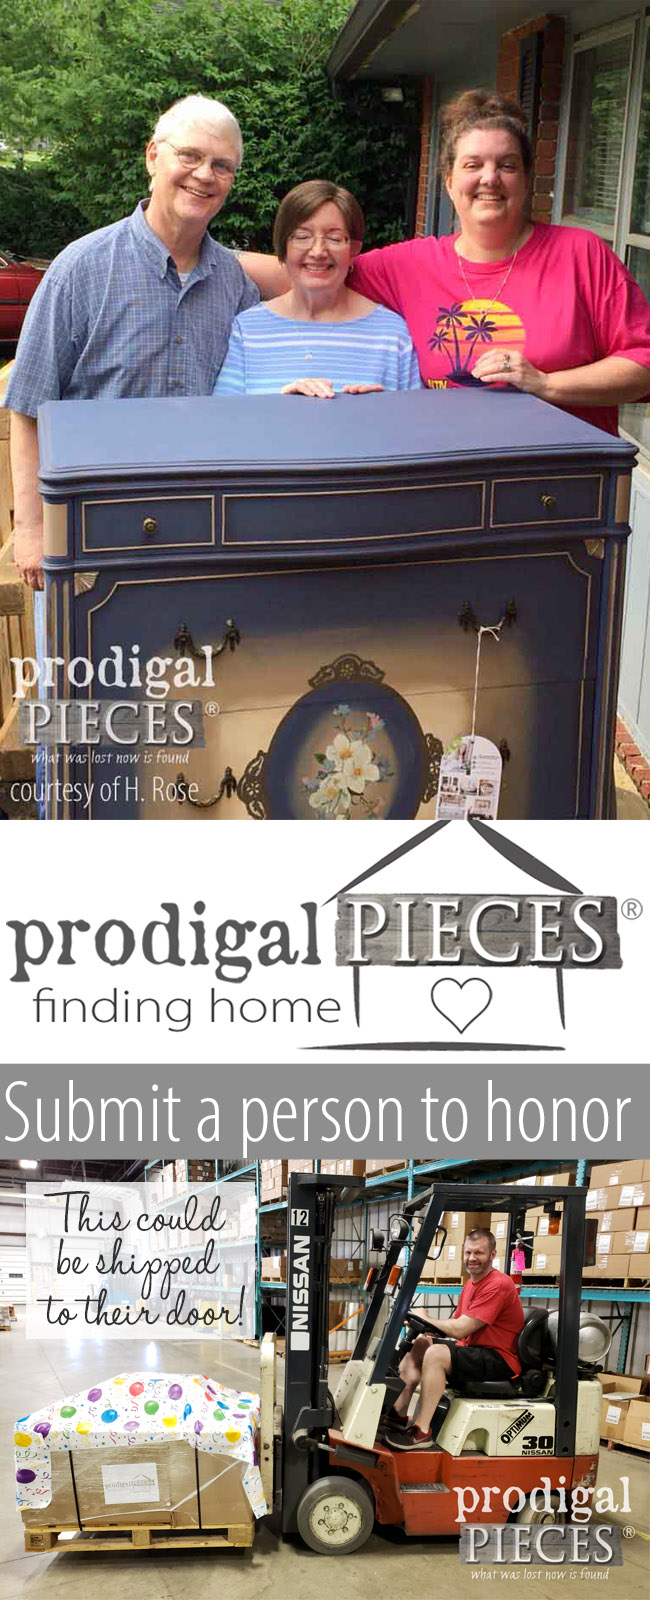 Do you know someone who deserves to be recognized for their selfless service or just needs a hug from their life's struggles? Nominate them for the Prodigal Pieces Finding Home Furniture Program. Details at prodigalpieces.com #prodigalpieces #findinghome